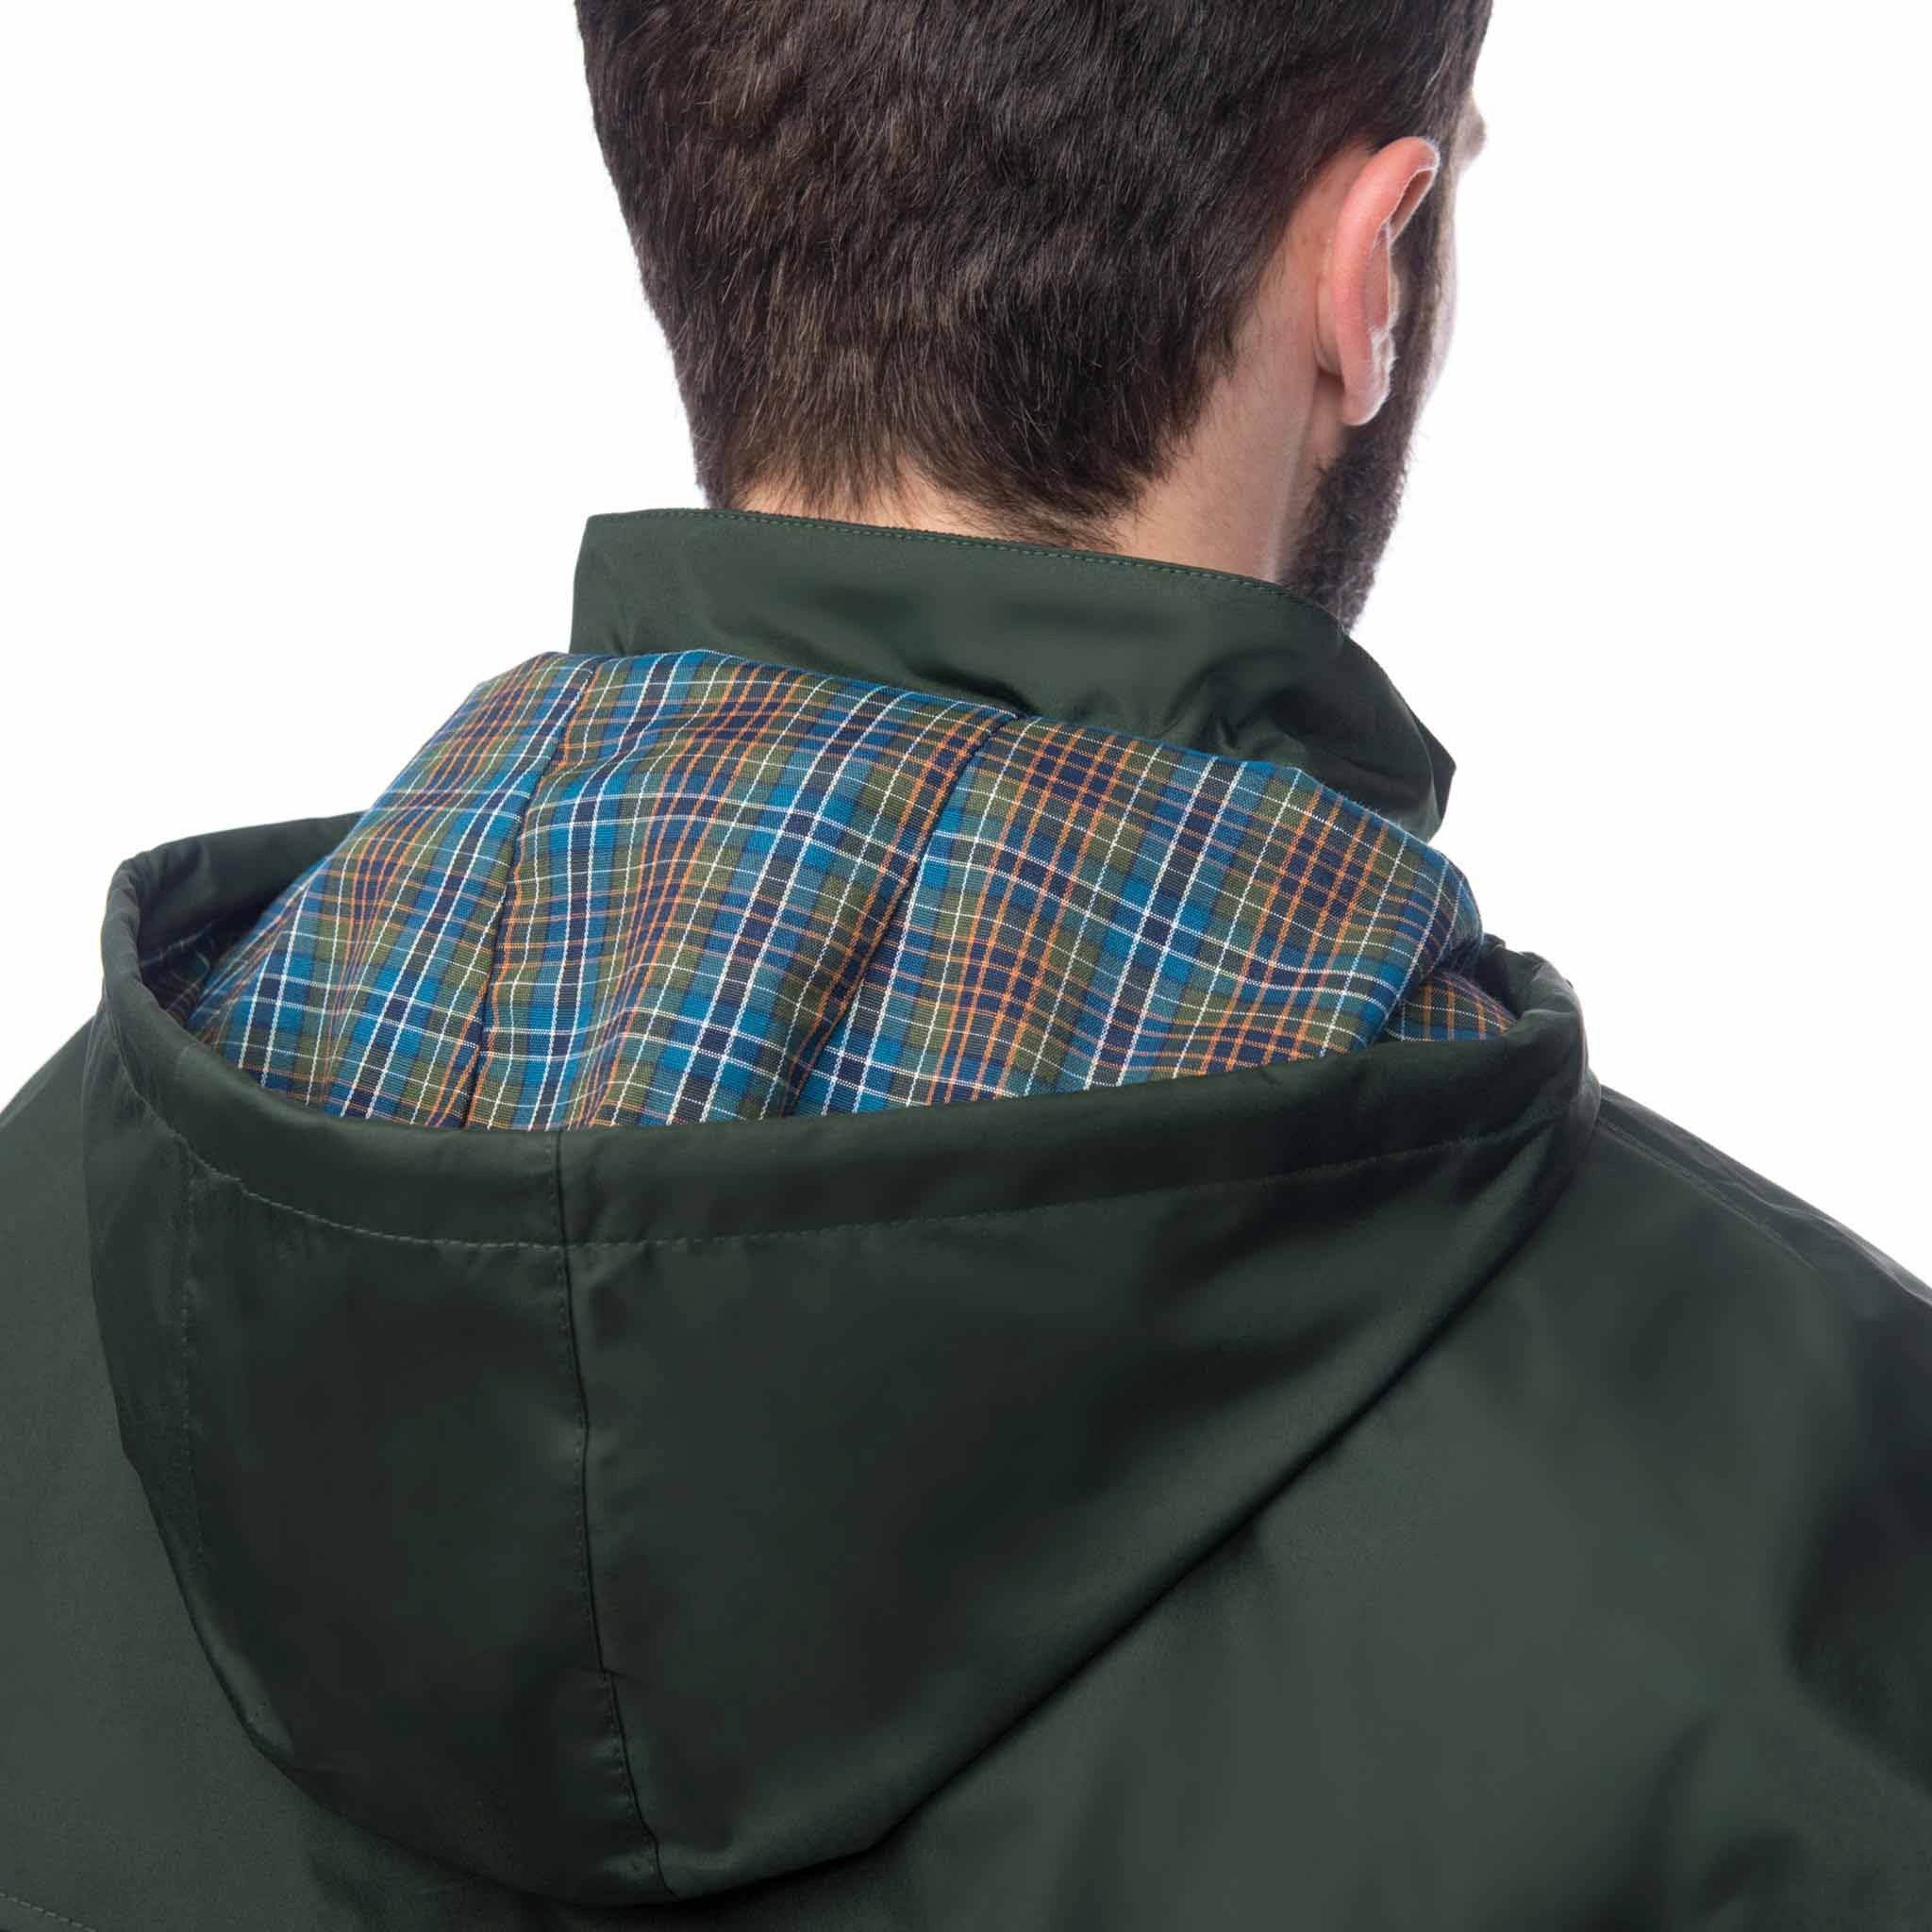 Lighthouse Mens Stockman Full Length Waterproof Rain Coat in green. Hood down rear view showing woven check lining.